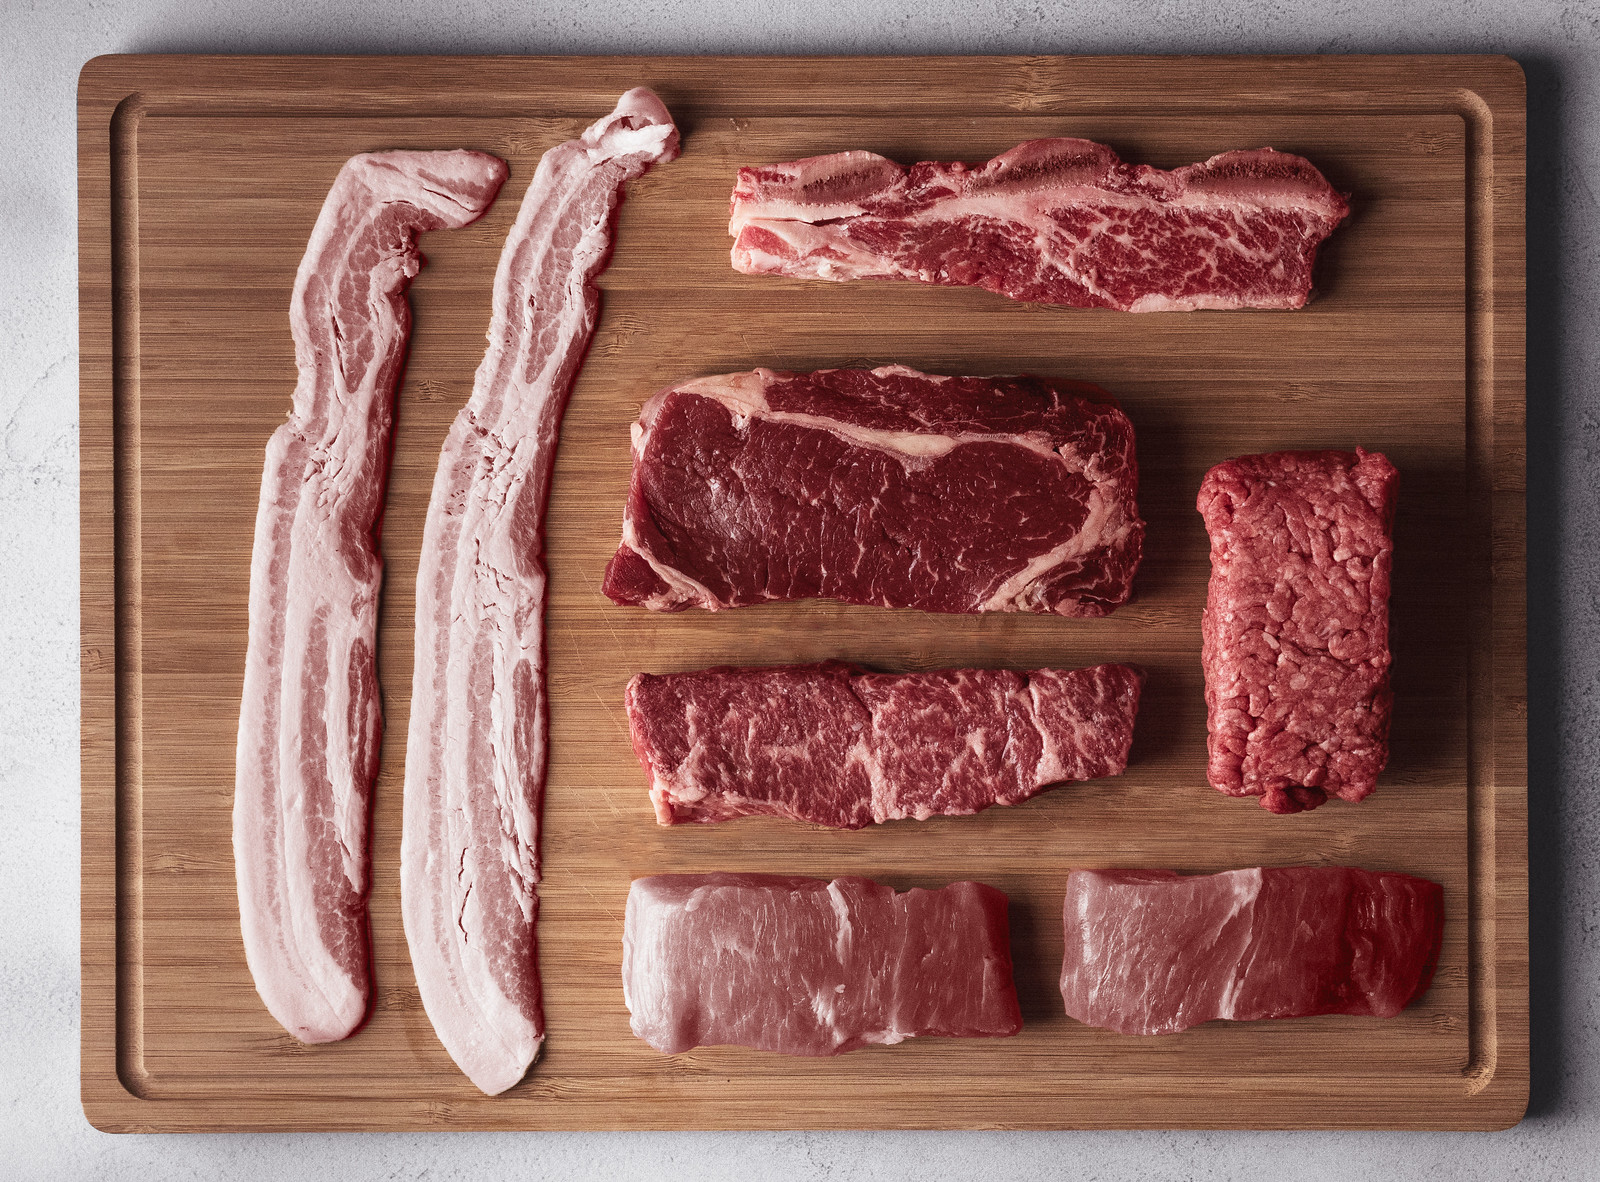 Knolling photography – Meat